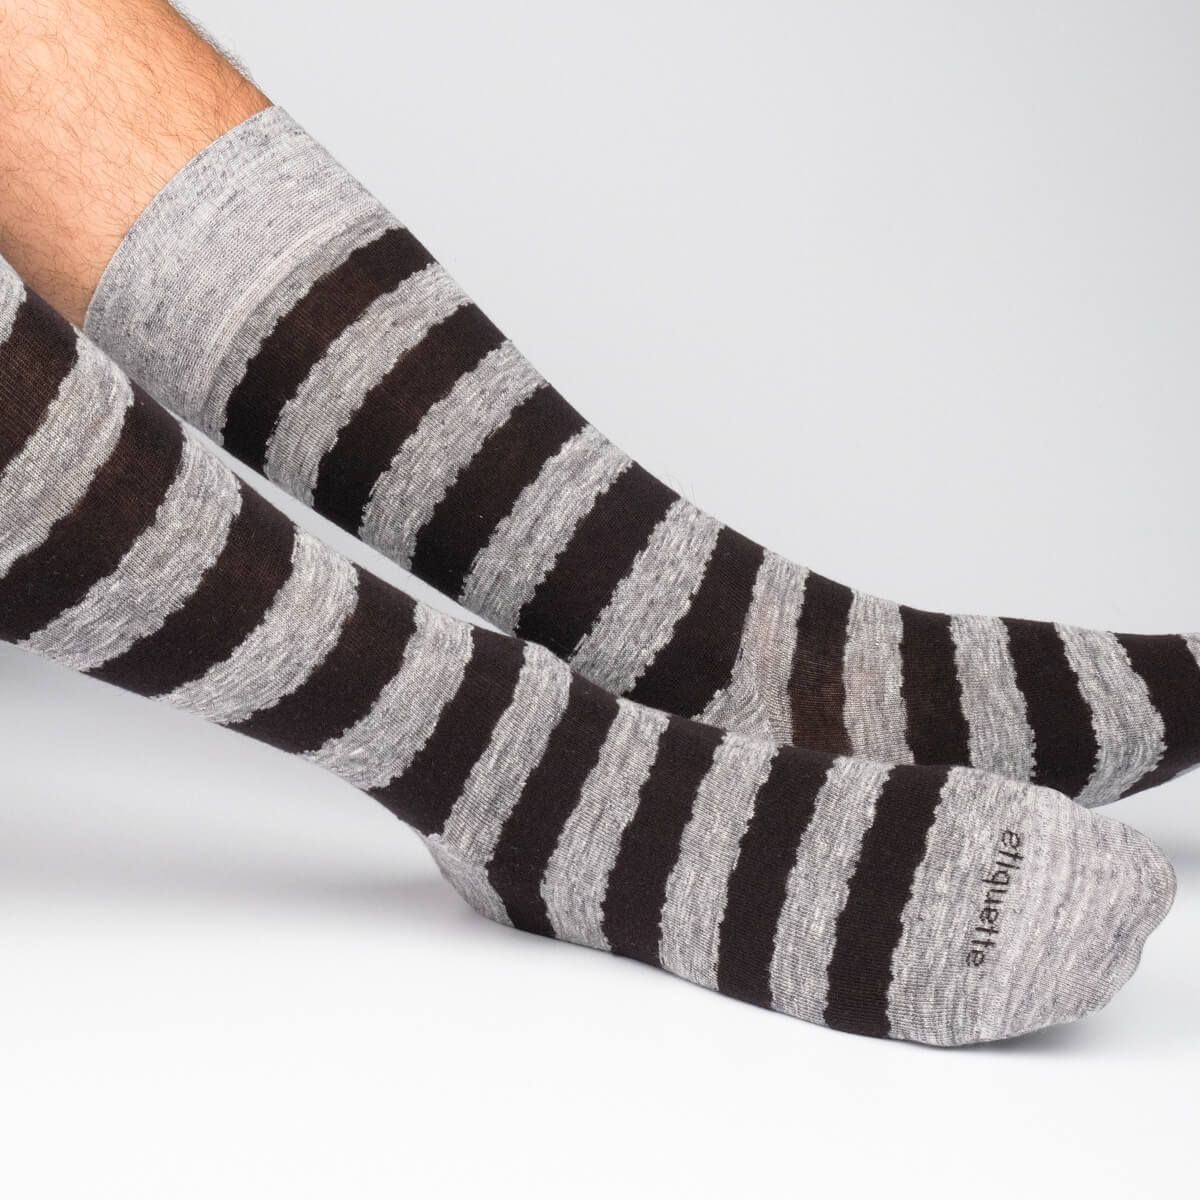 Mens Socks - Iona Stripes Men's Socks - Grey⎪Etiquette Clothiers